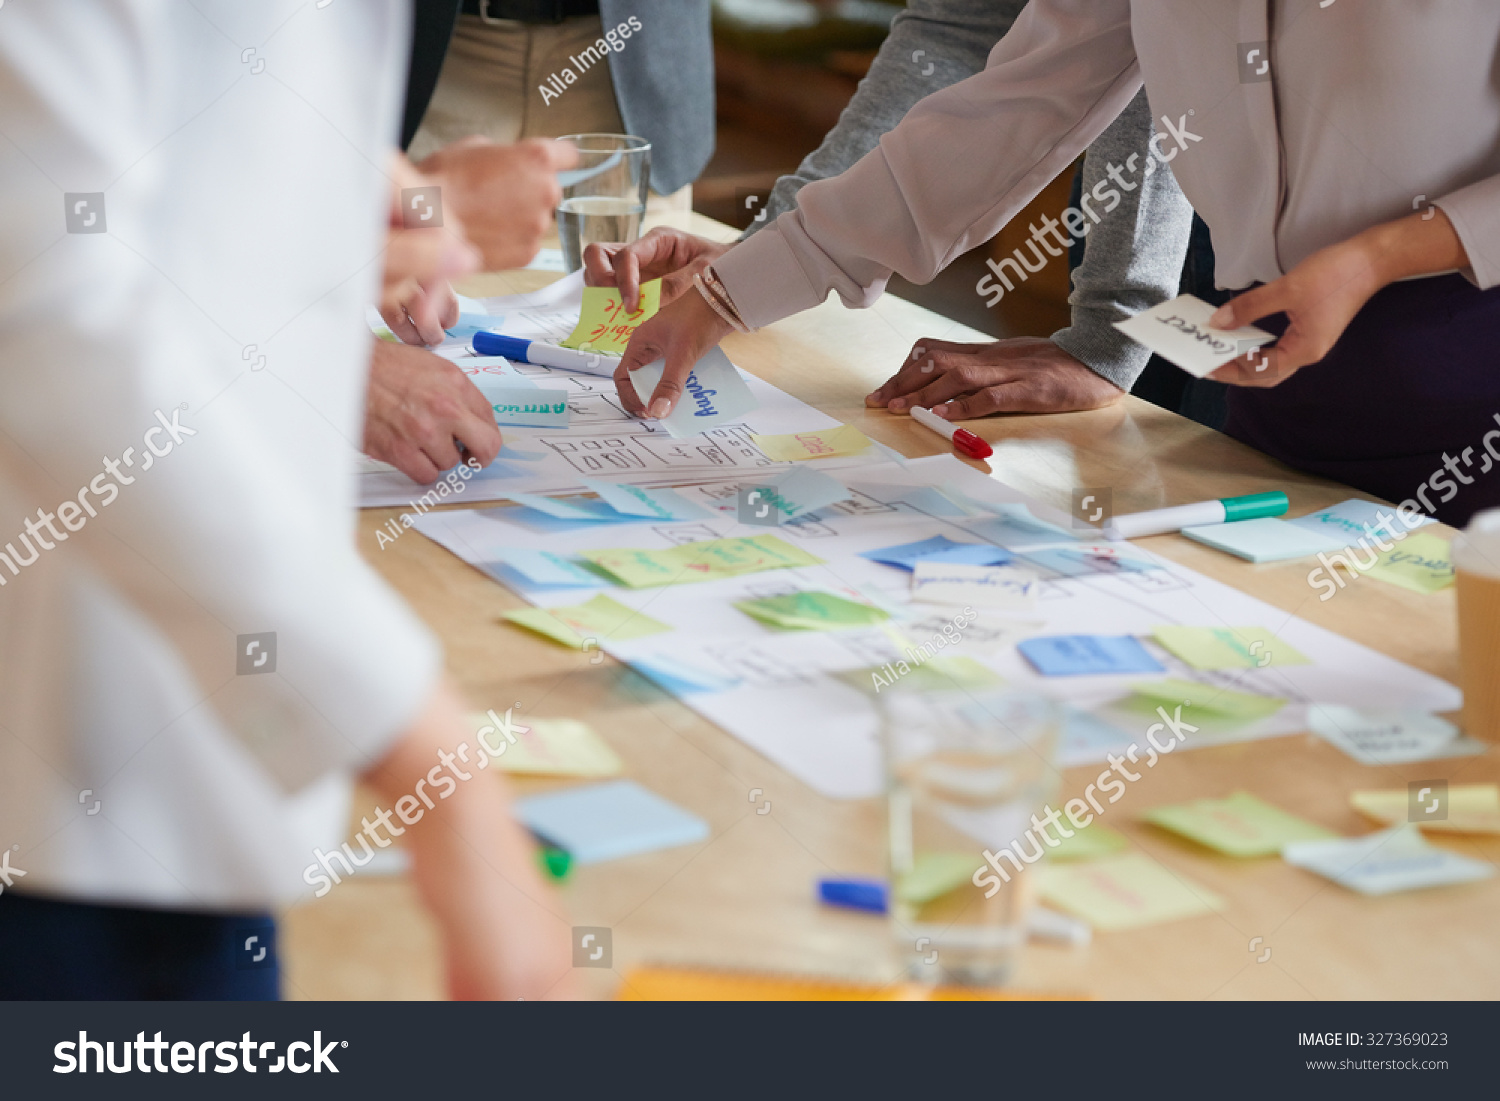 Brainstorming Session Post Notes On Desk Stock Photo ...